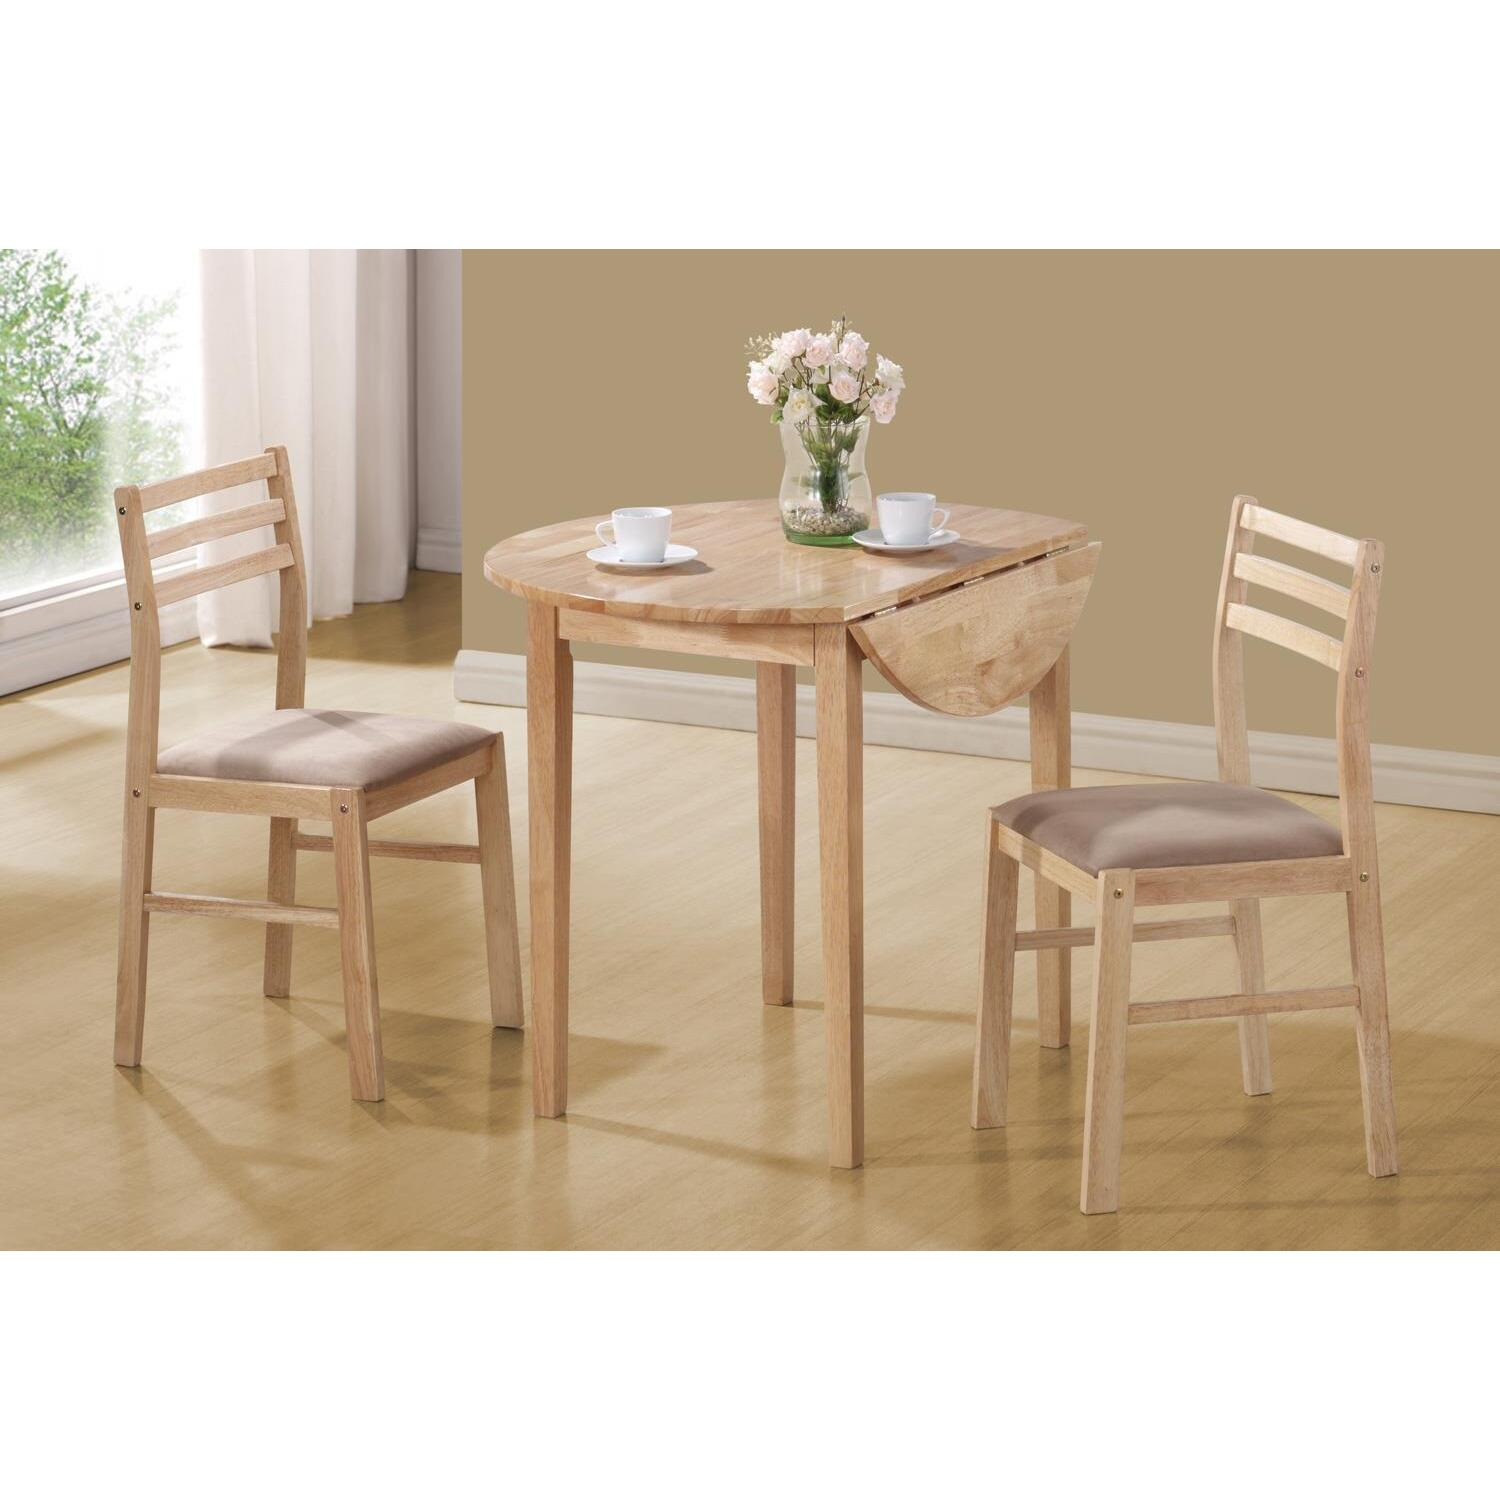 3 piece dining set ojcommerce for 3 piece dining room table